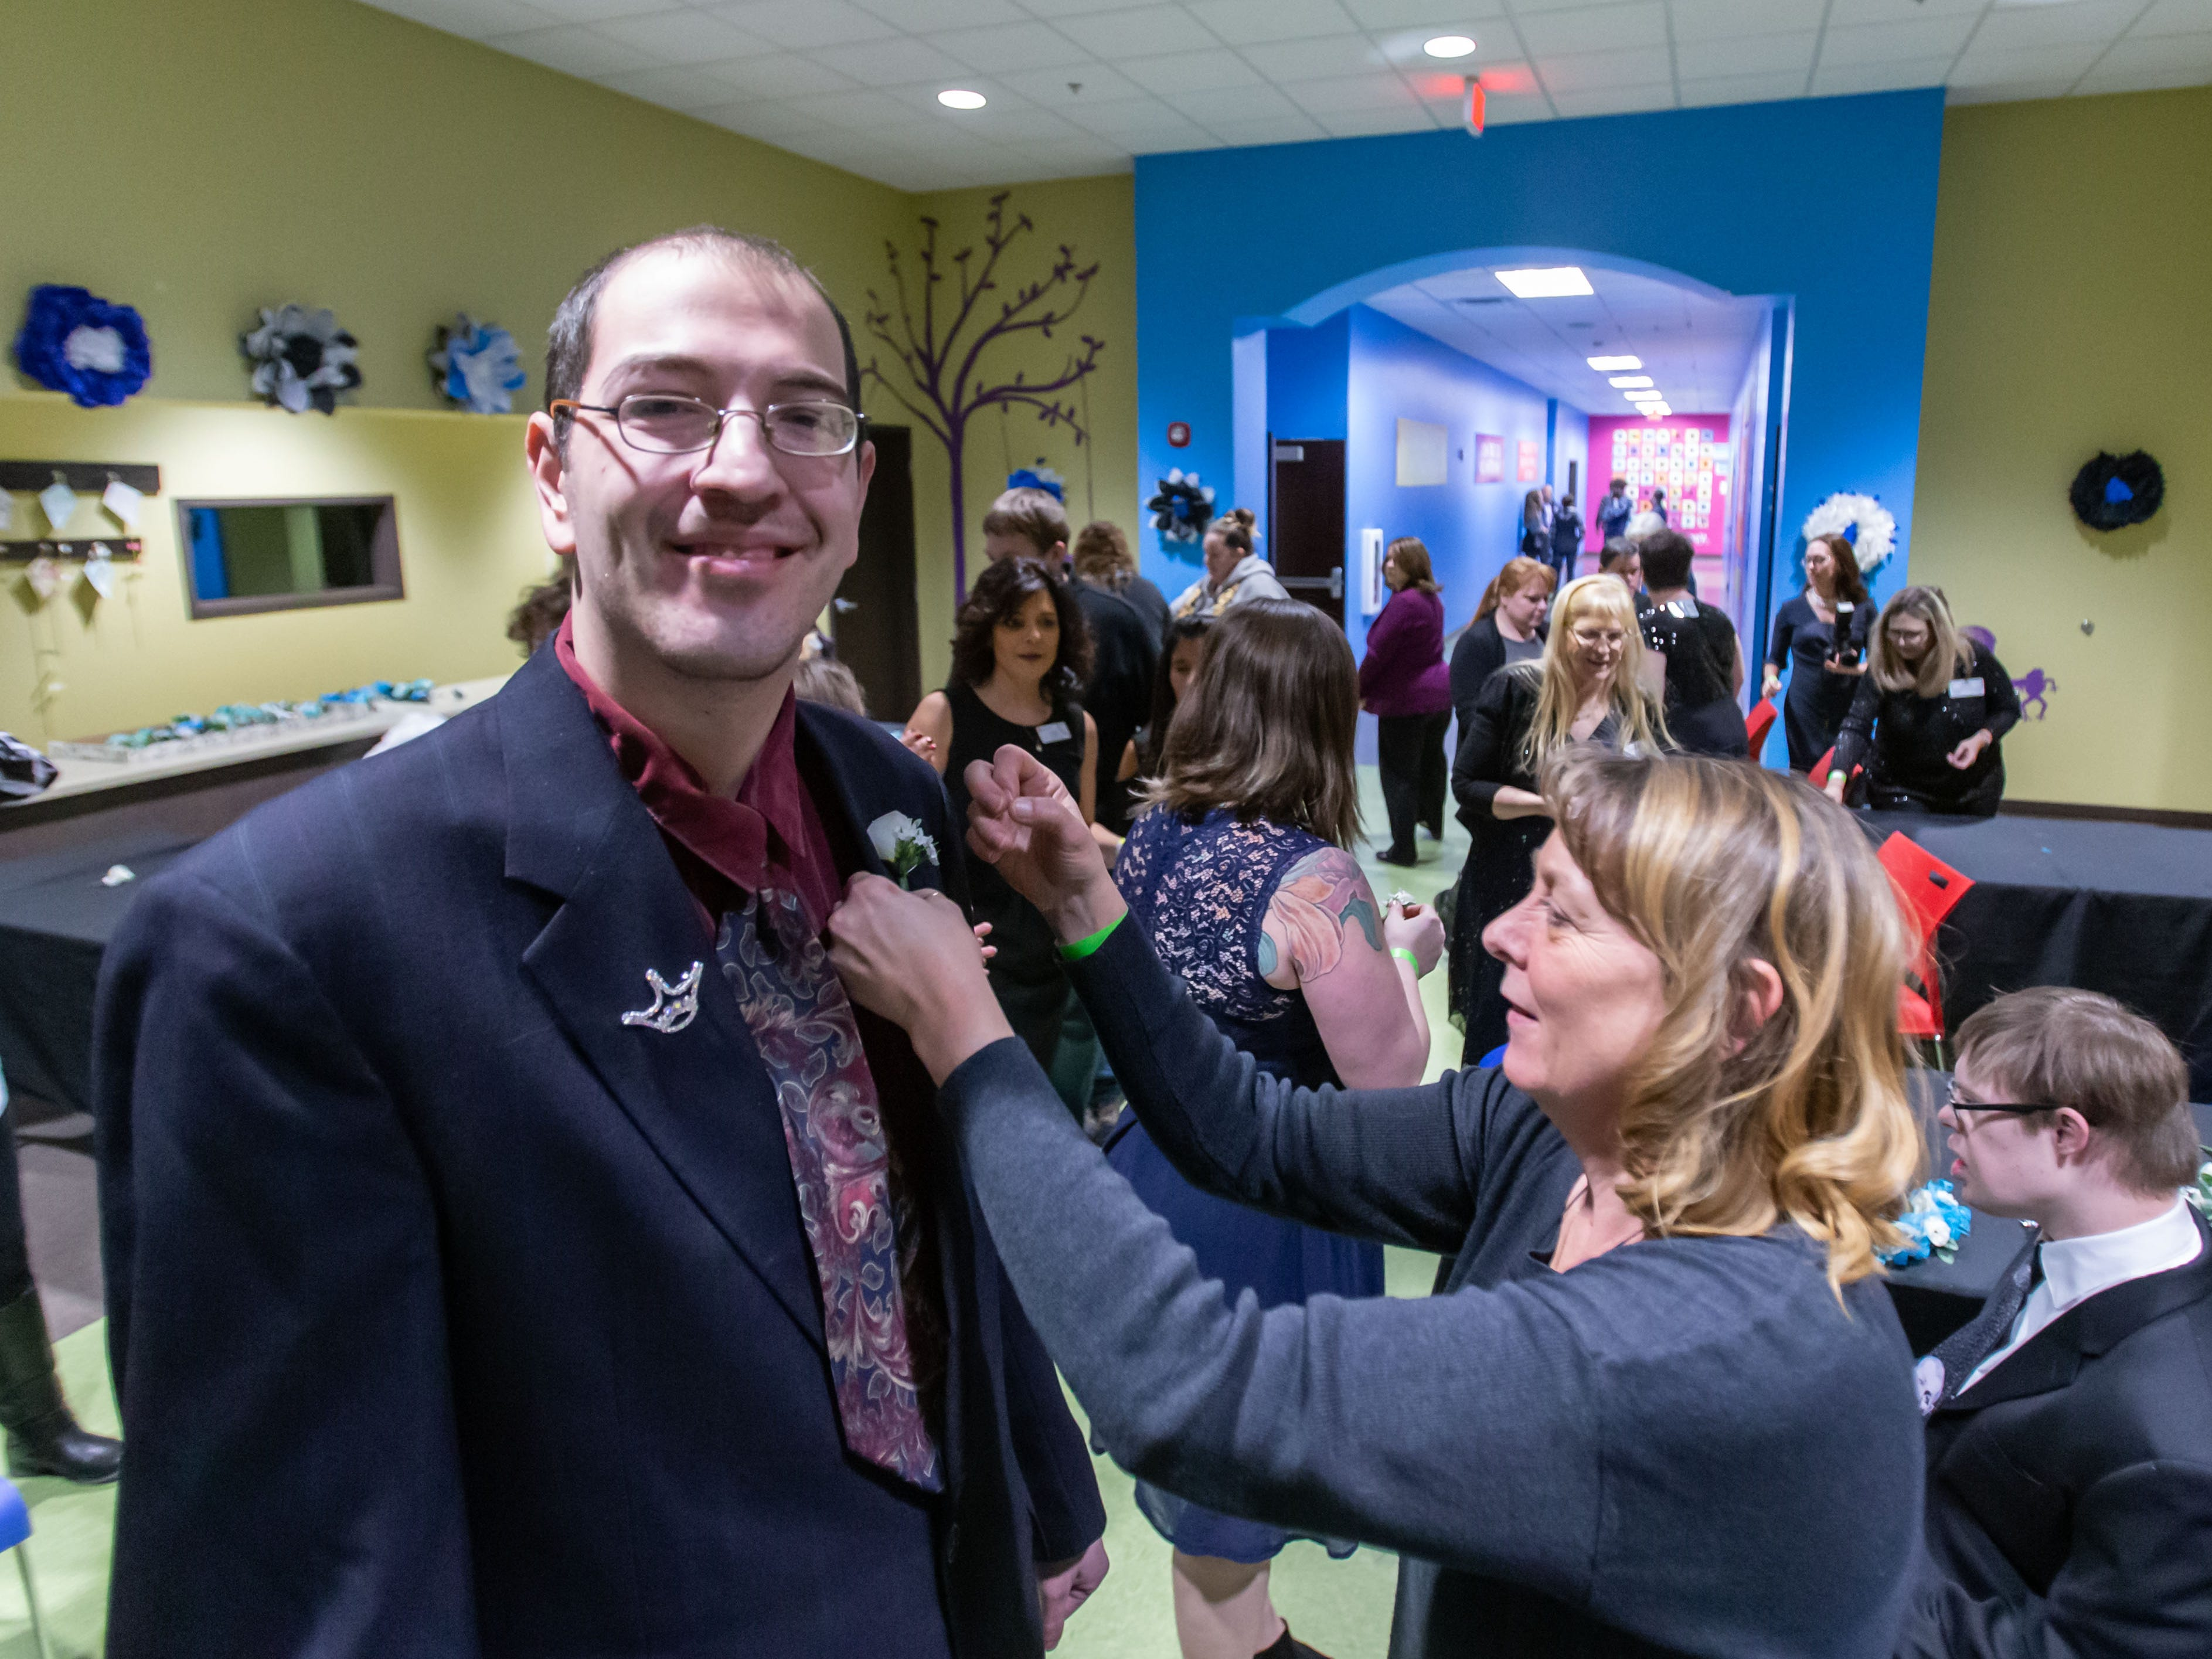 Nicolas C. is fitted with a boutonniere by volunteer Holly Soto during the Night to Shine Prom hosted by Brooklife Church in Mukwonago on Friday, Feb. 8, 2019. Every guest of Night to Shine receives the royal treatment, including hair and makeup, limousine rides, corsages and boutonnieres, a catered dinner, karaoke and dancing, all leading up to the moment when each guest is crowned king or queen of the prom.